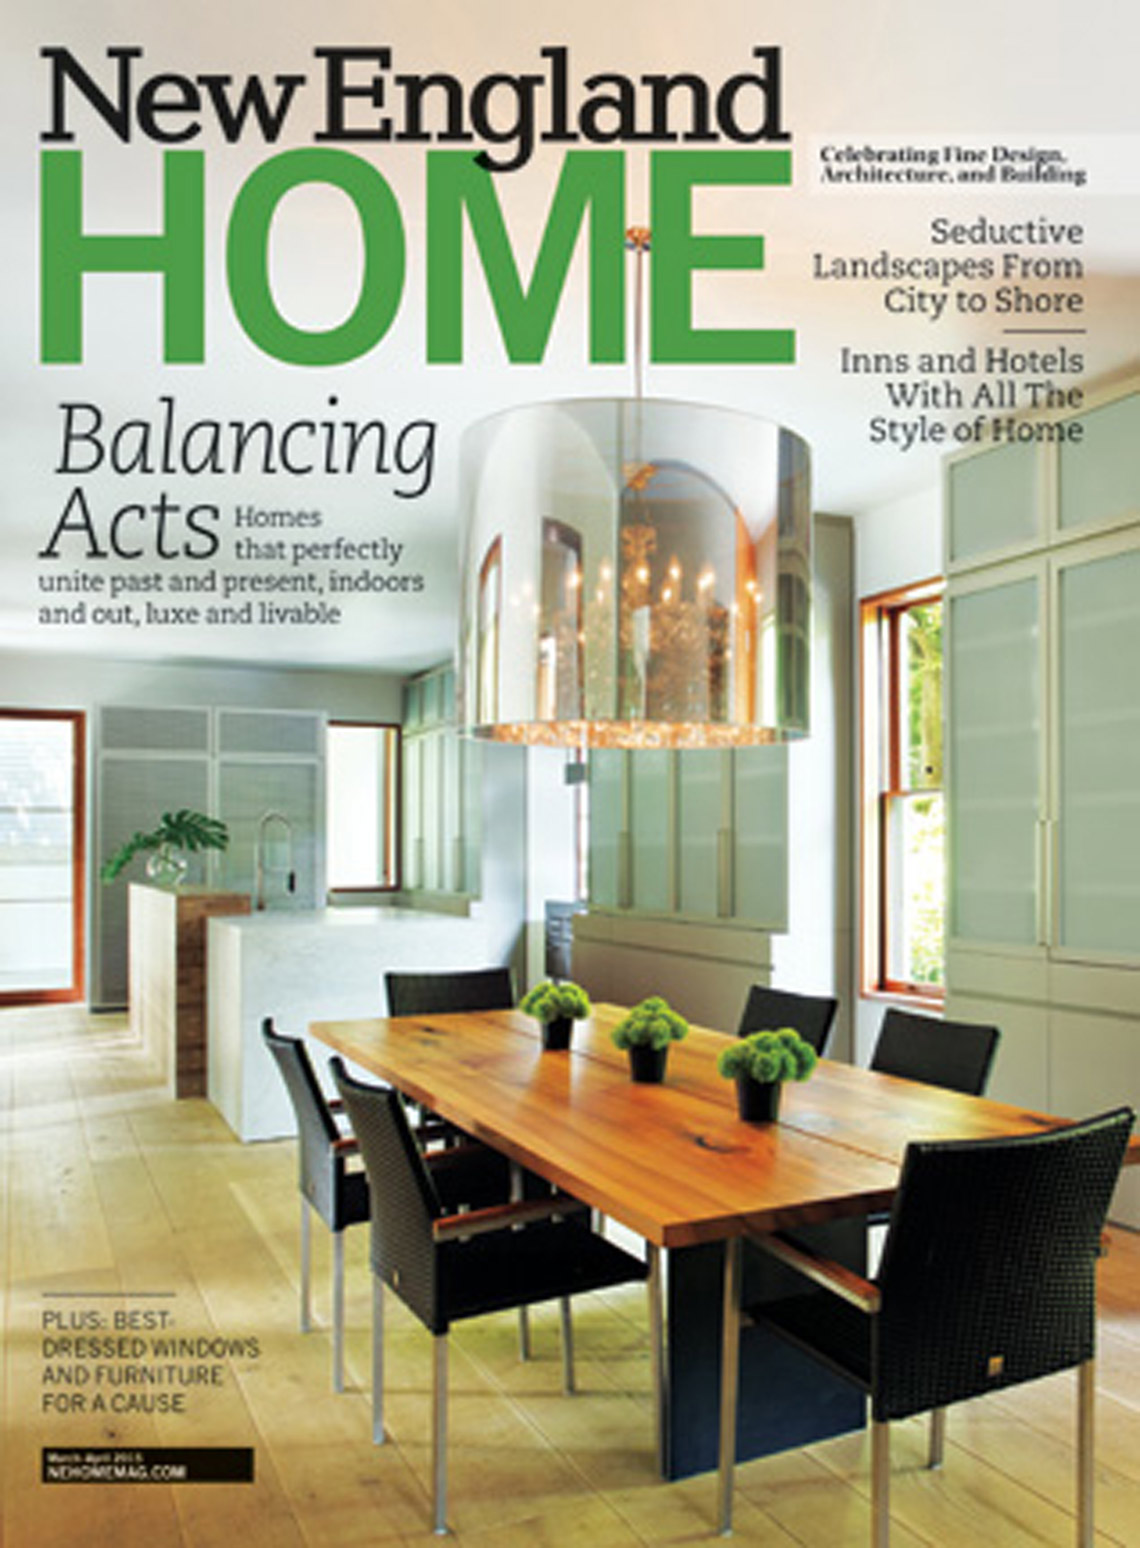 New England Home Feature article on Peter Diepenbrock